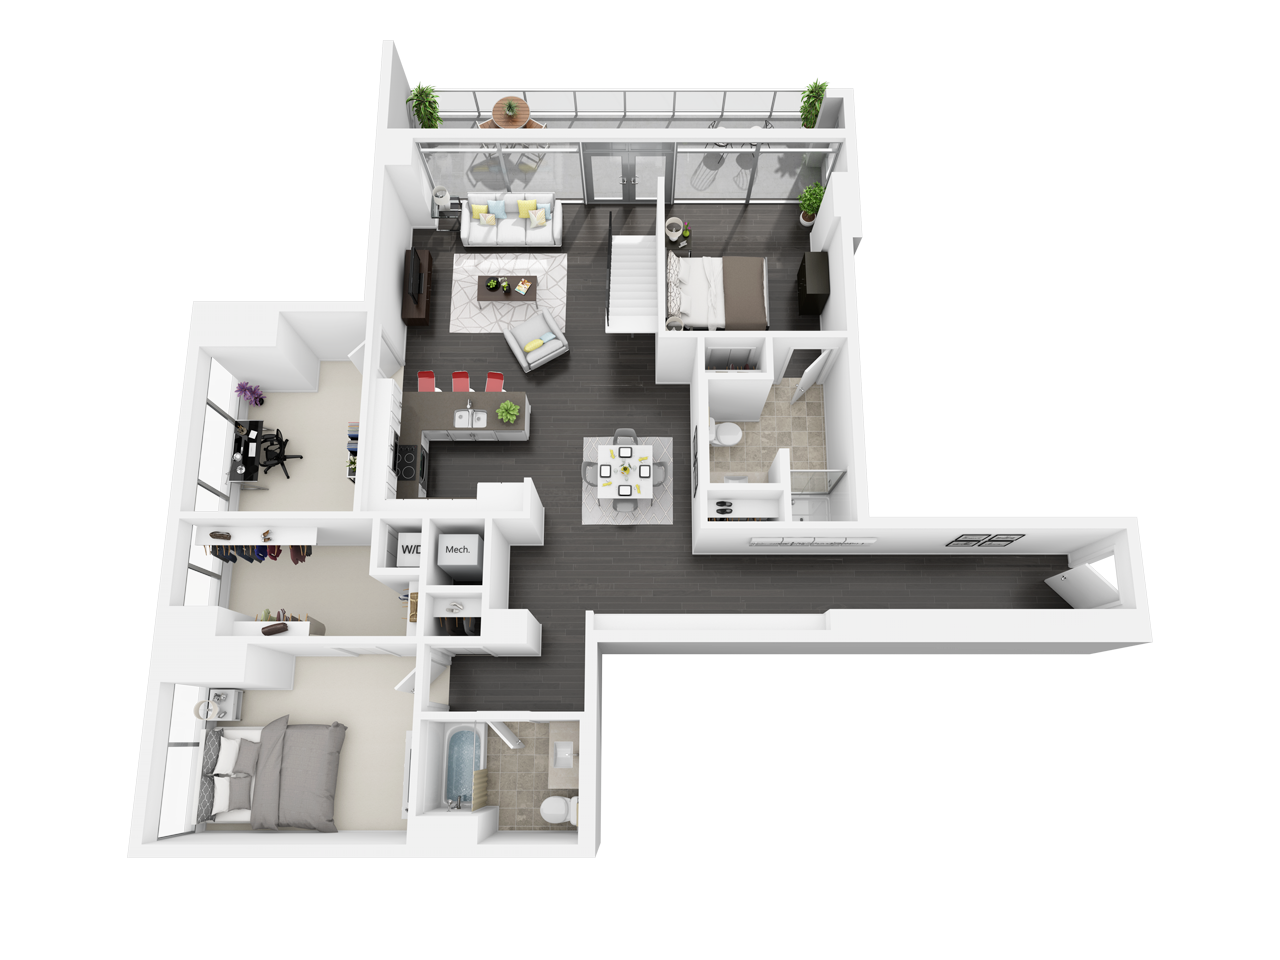 1 2 3 Bedroom Downtown Los Angeles Ca Apartments Floor Plans House Floor Plans Los Angeles Apartments